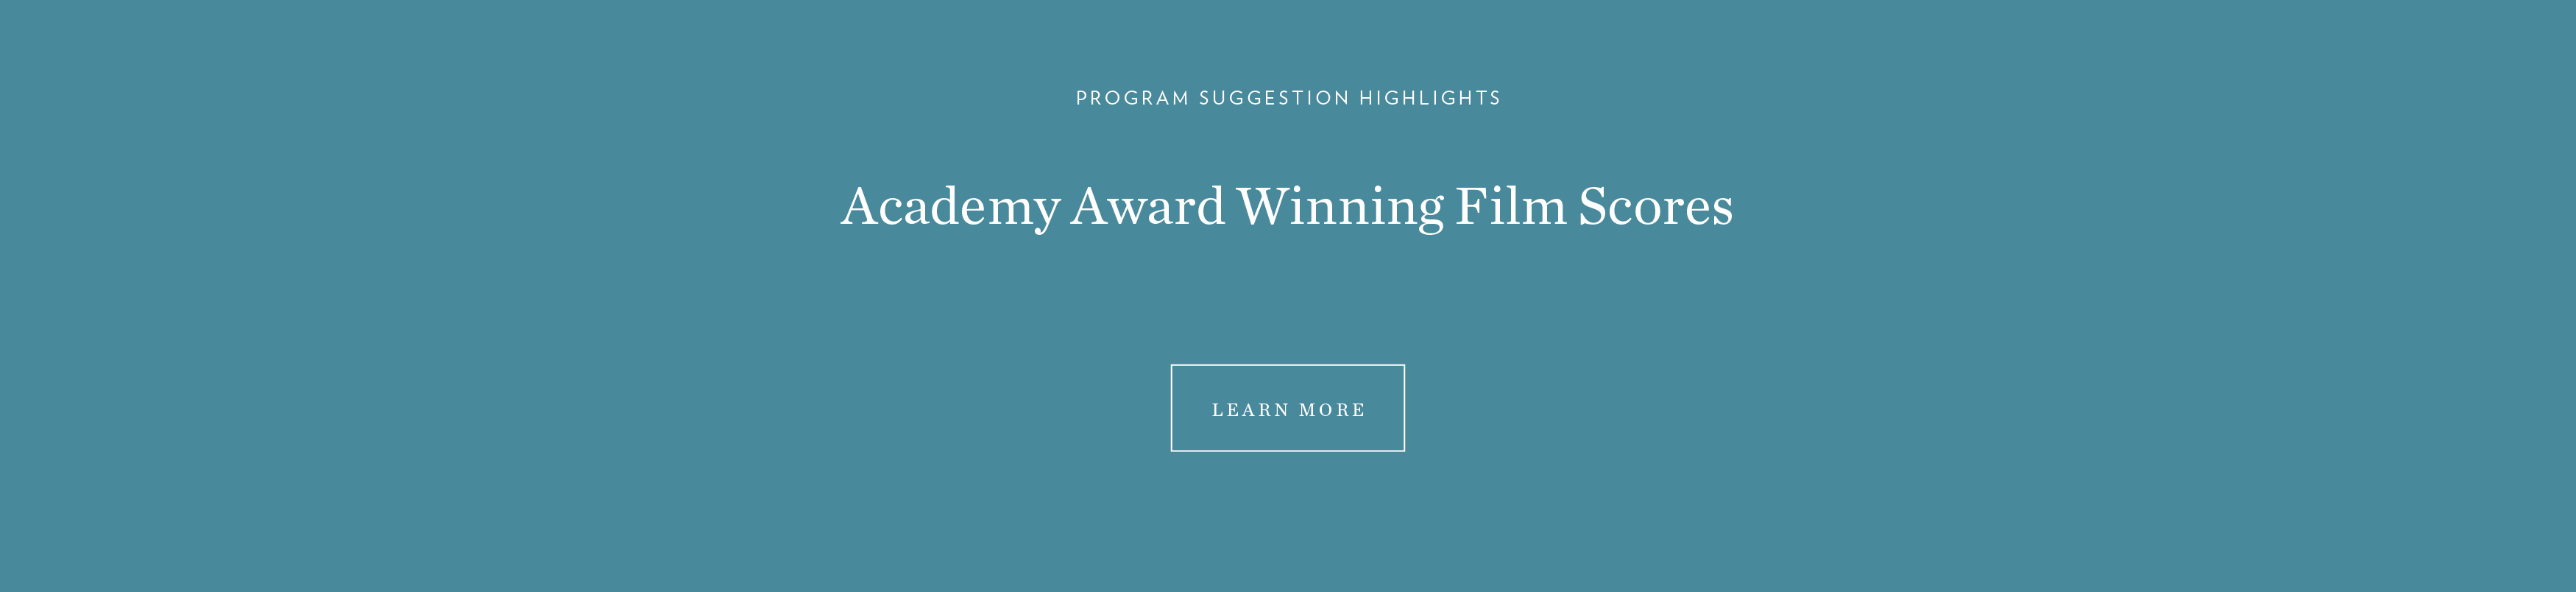 acadamy-award-winning-film-scores-tnv